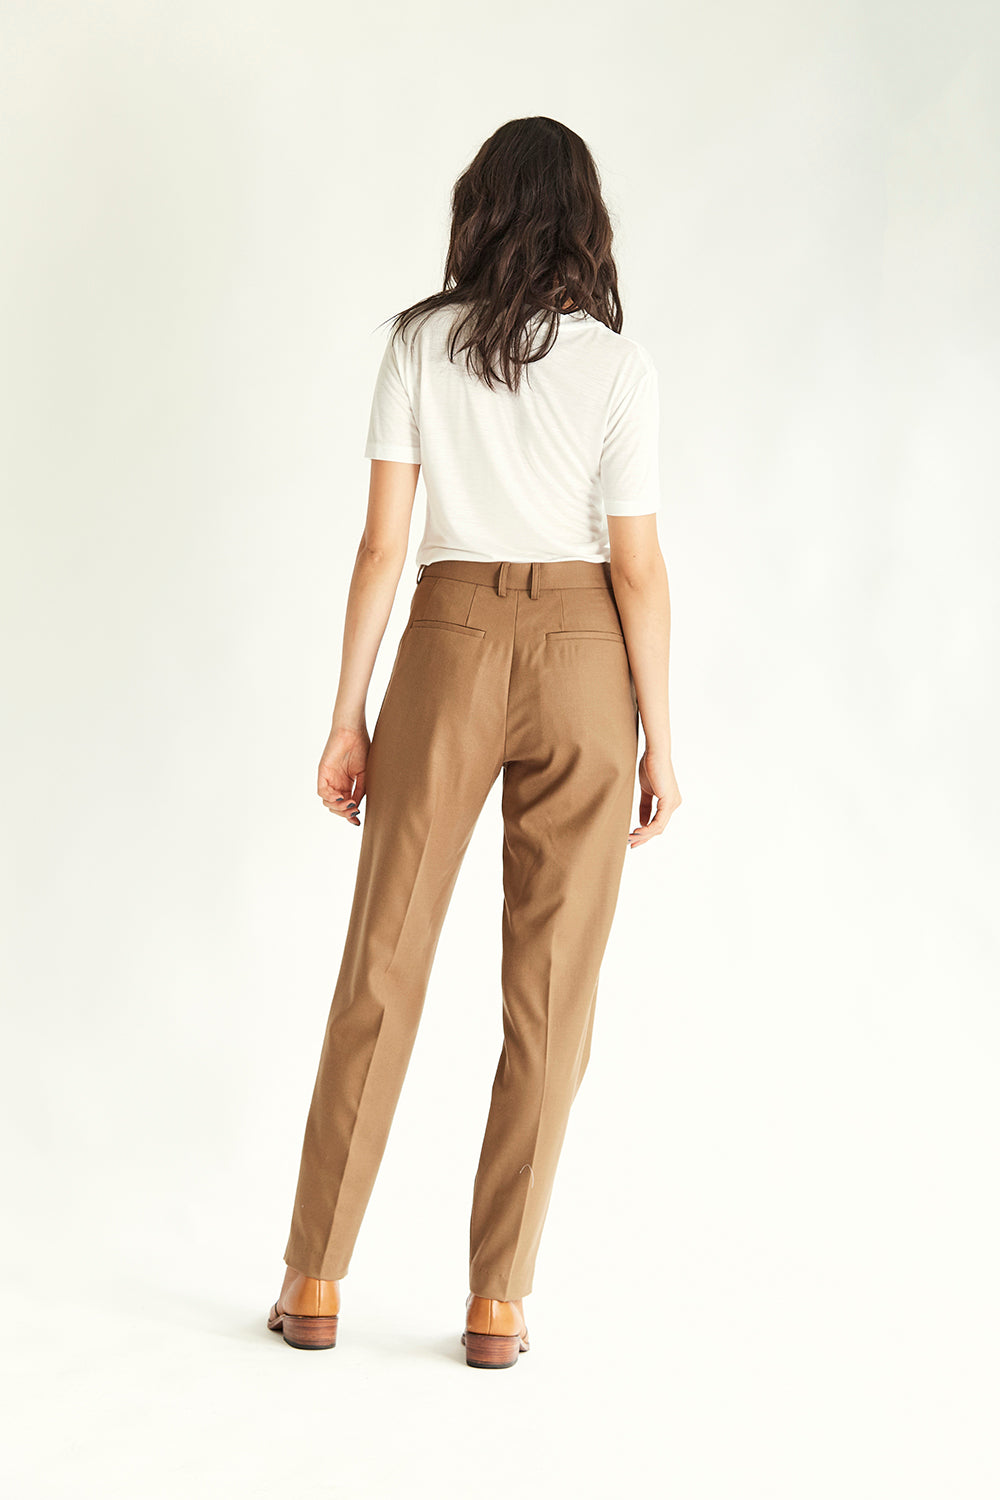 Manchester Fitted Trouser - Tan - Wynn Hamlyn — Shop